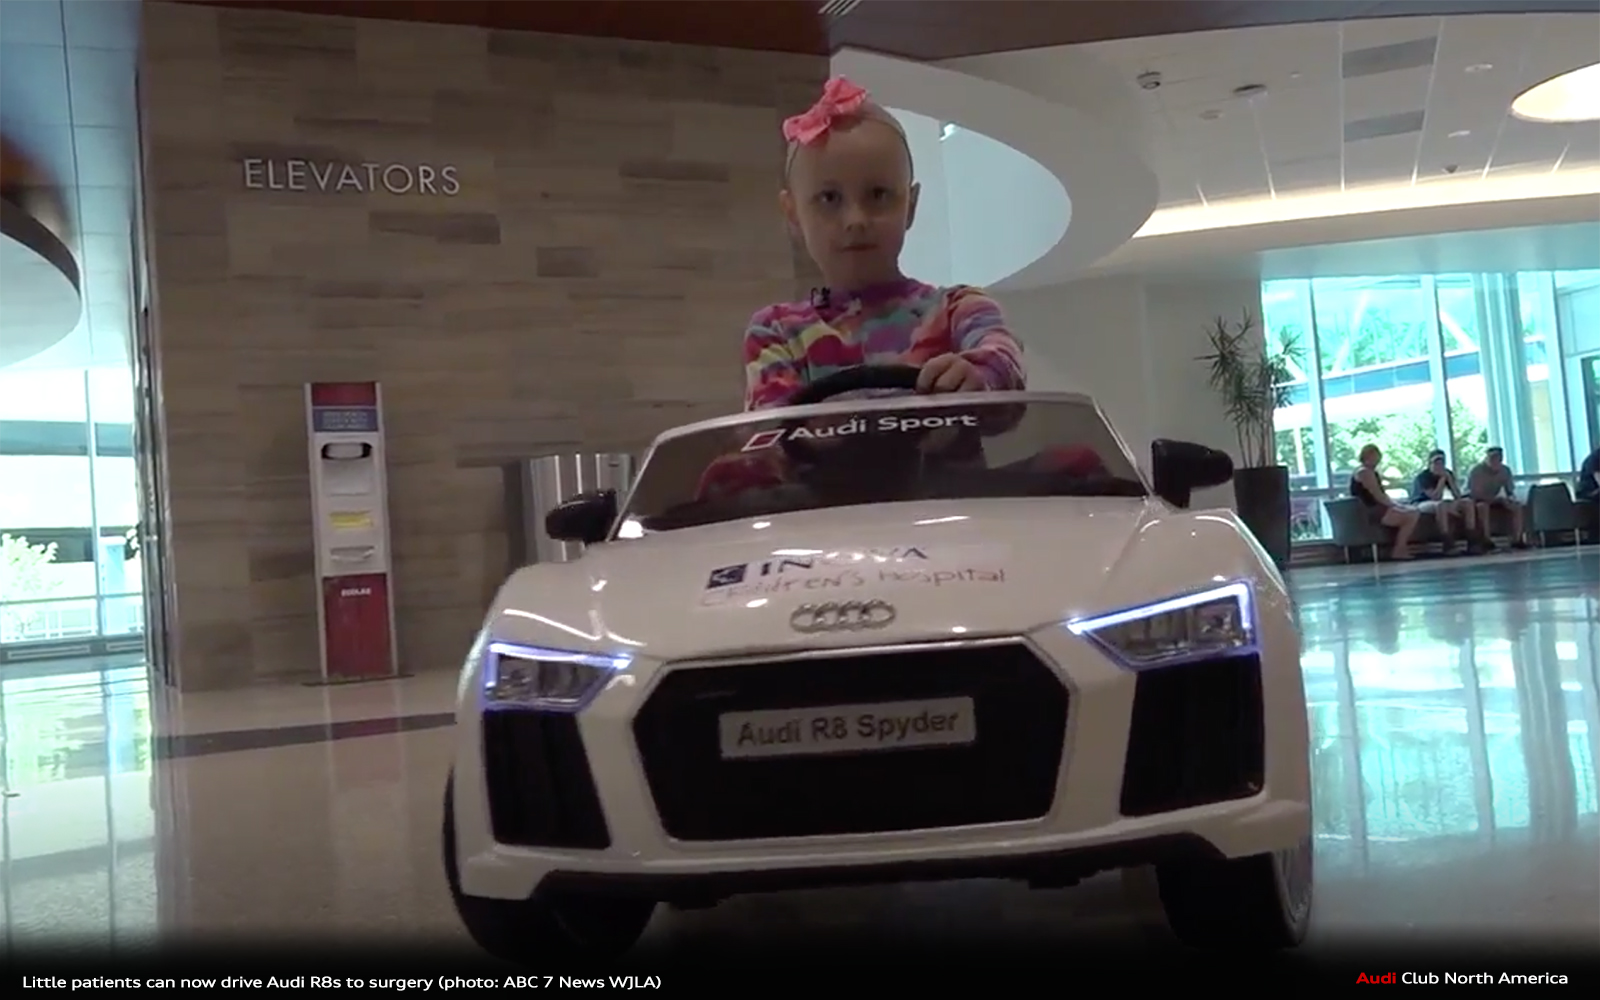 Feel Good Story of the Day: Little Patients Can Now Drive Audi R8s To Surgery